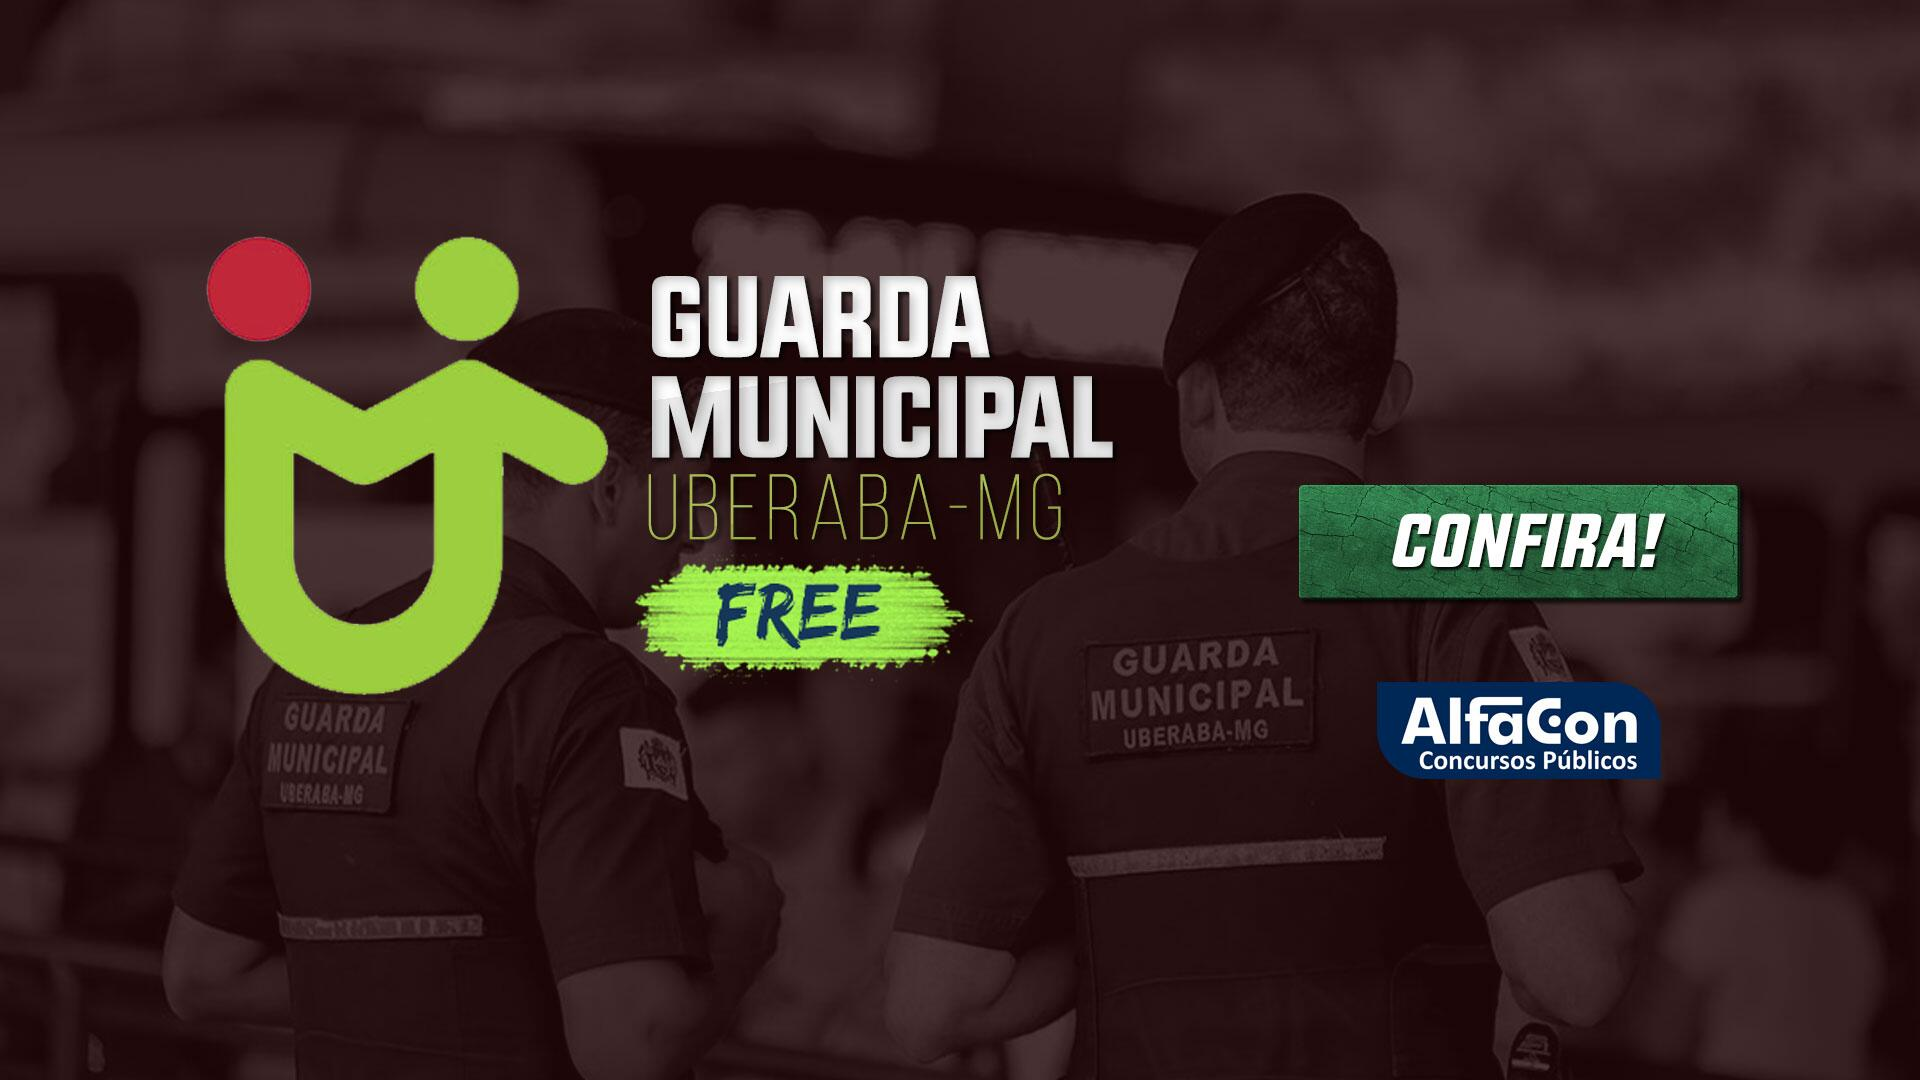 Guarda Municipal de Uberaba - MG - GRATUITO